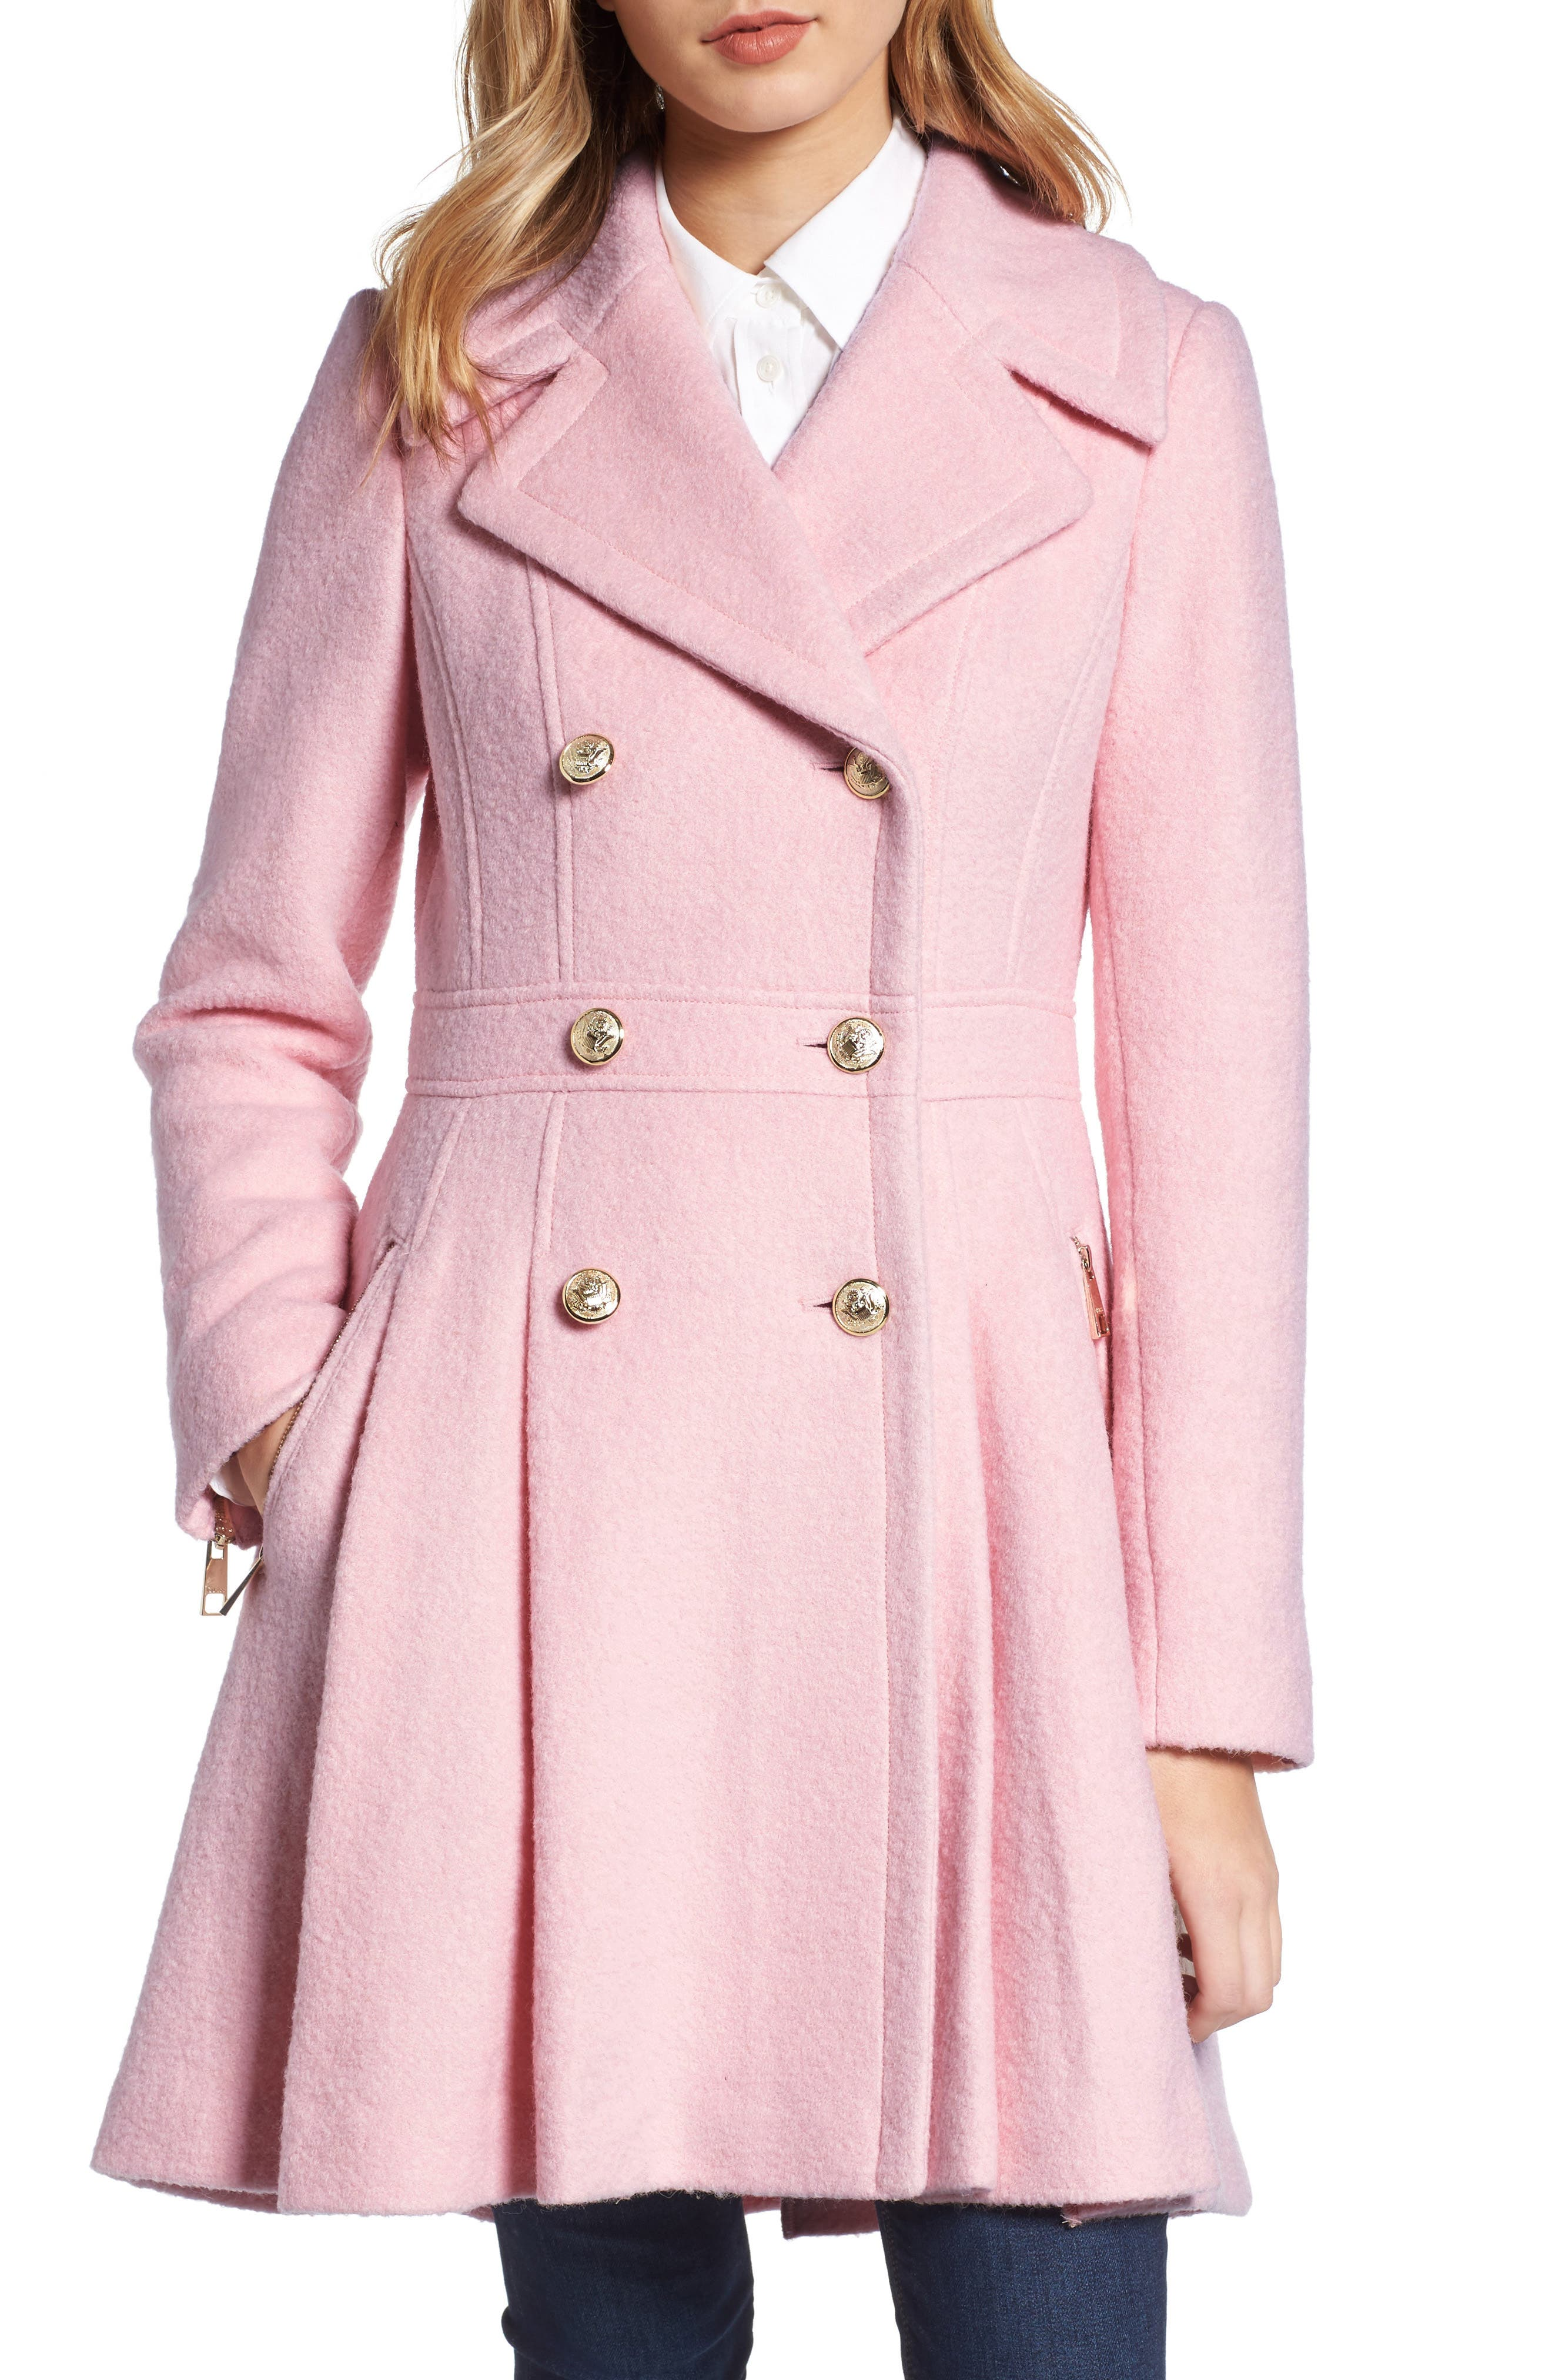 Main Image - GUESS Double Breasted Wool Blend Coat (Regular & Petite)